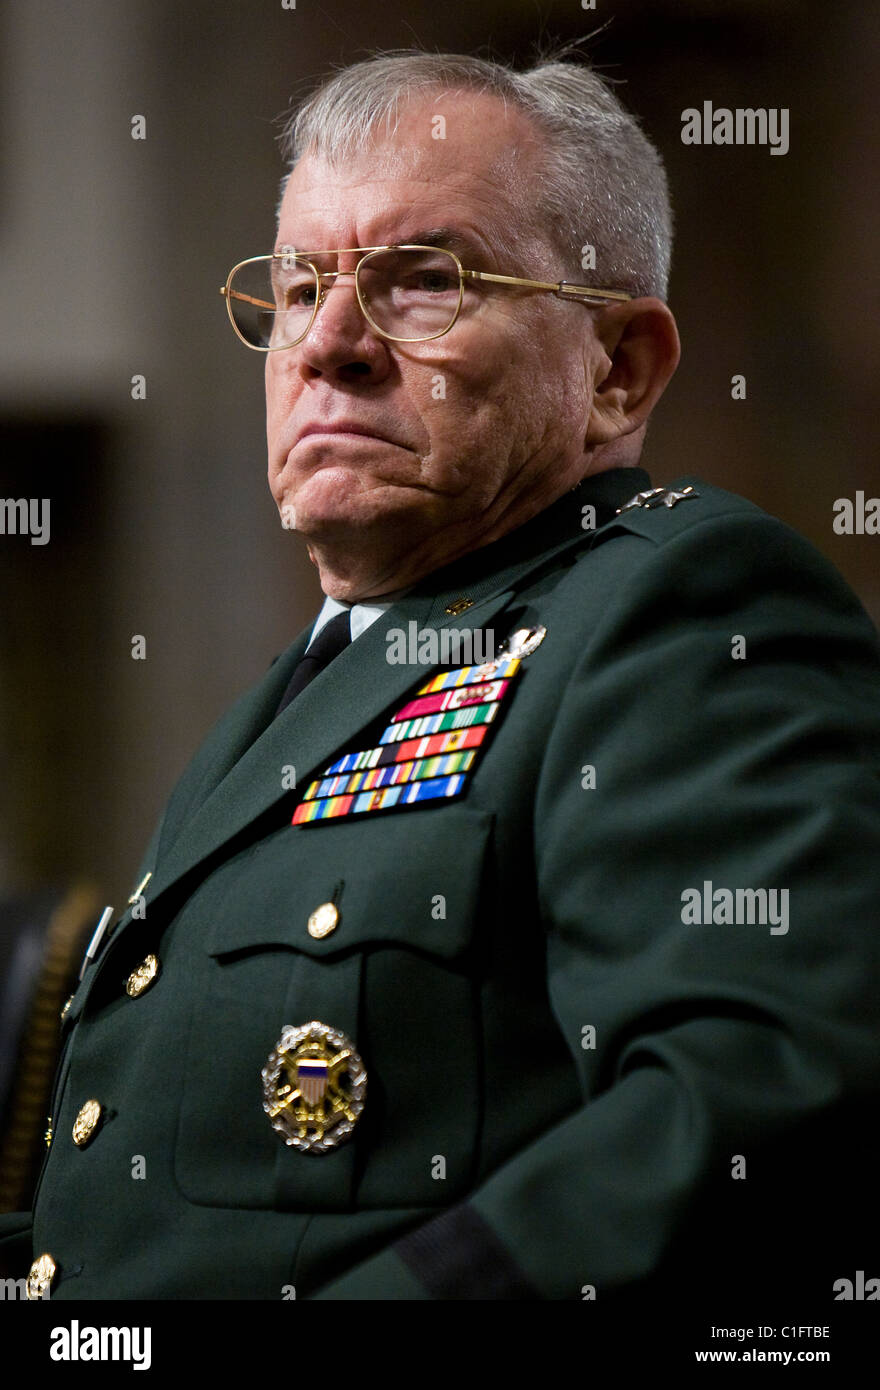 General Ronald L. Burgess, Jr., Director of the Defense Intelligence Agency (DIA) - Stock Image